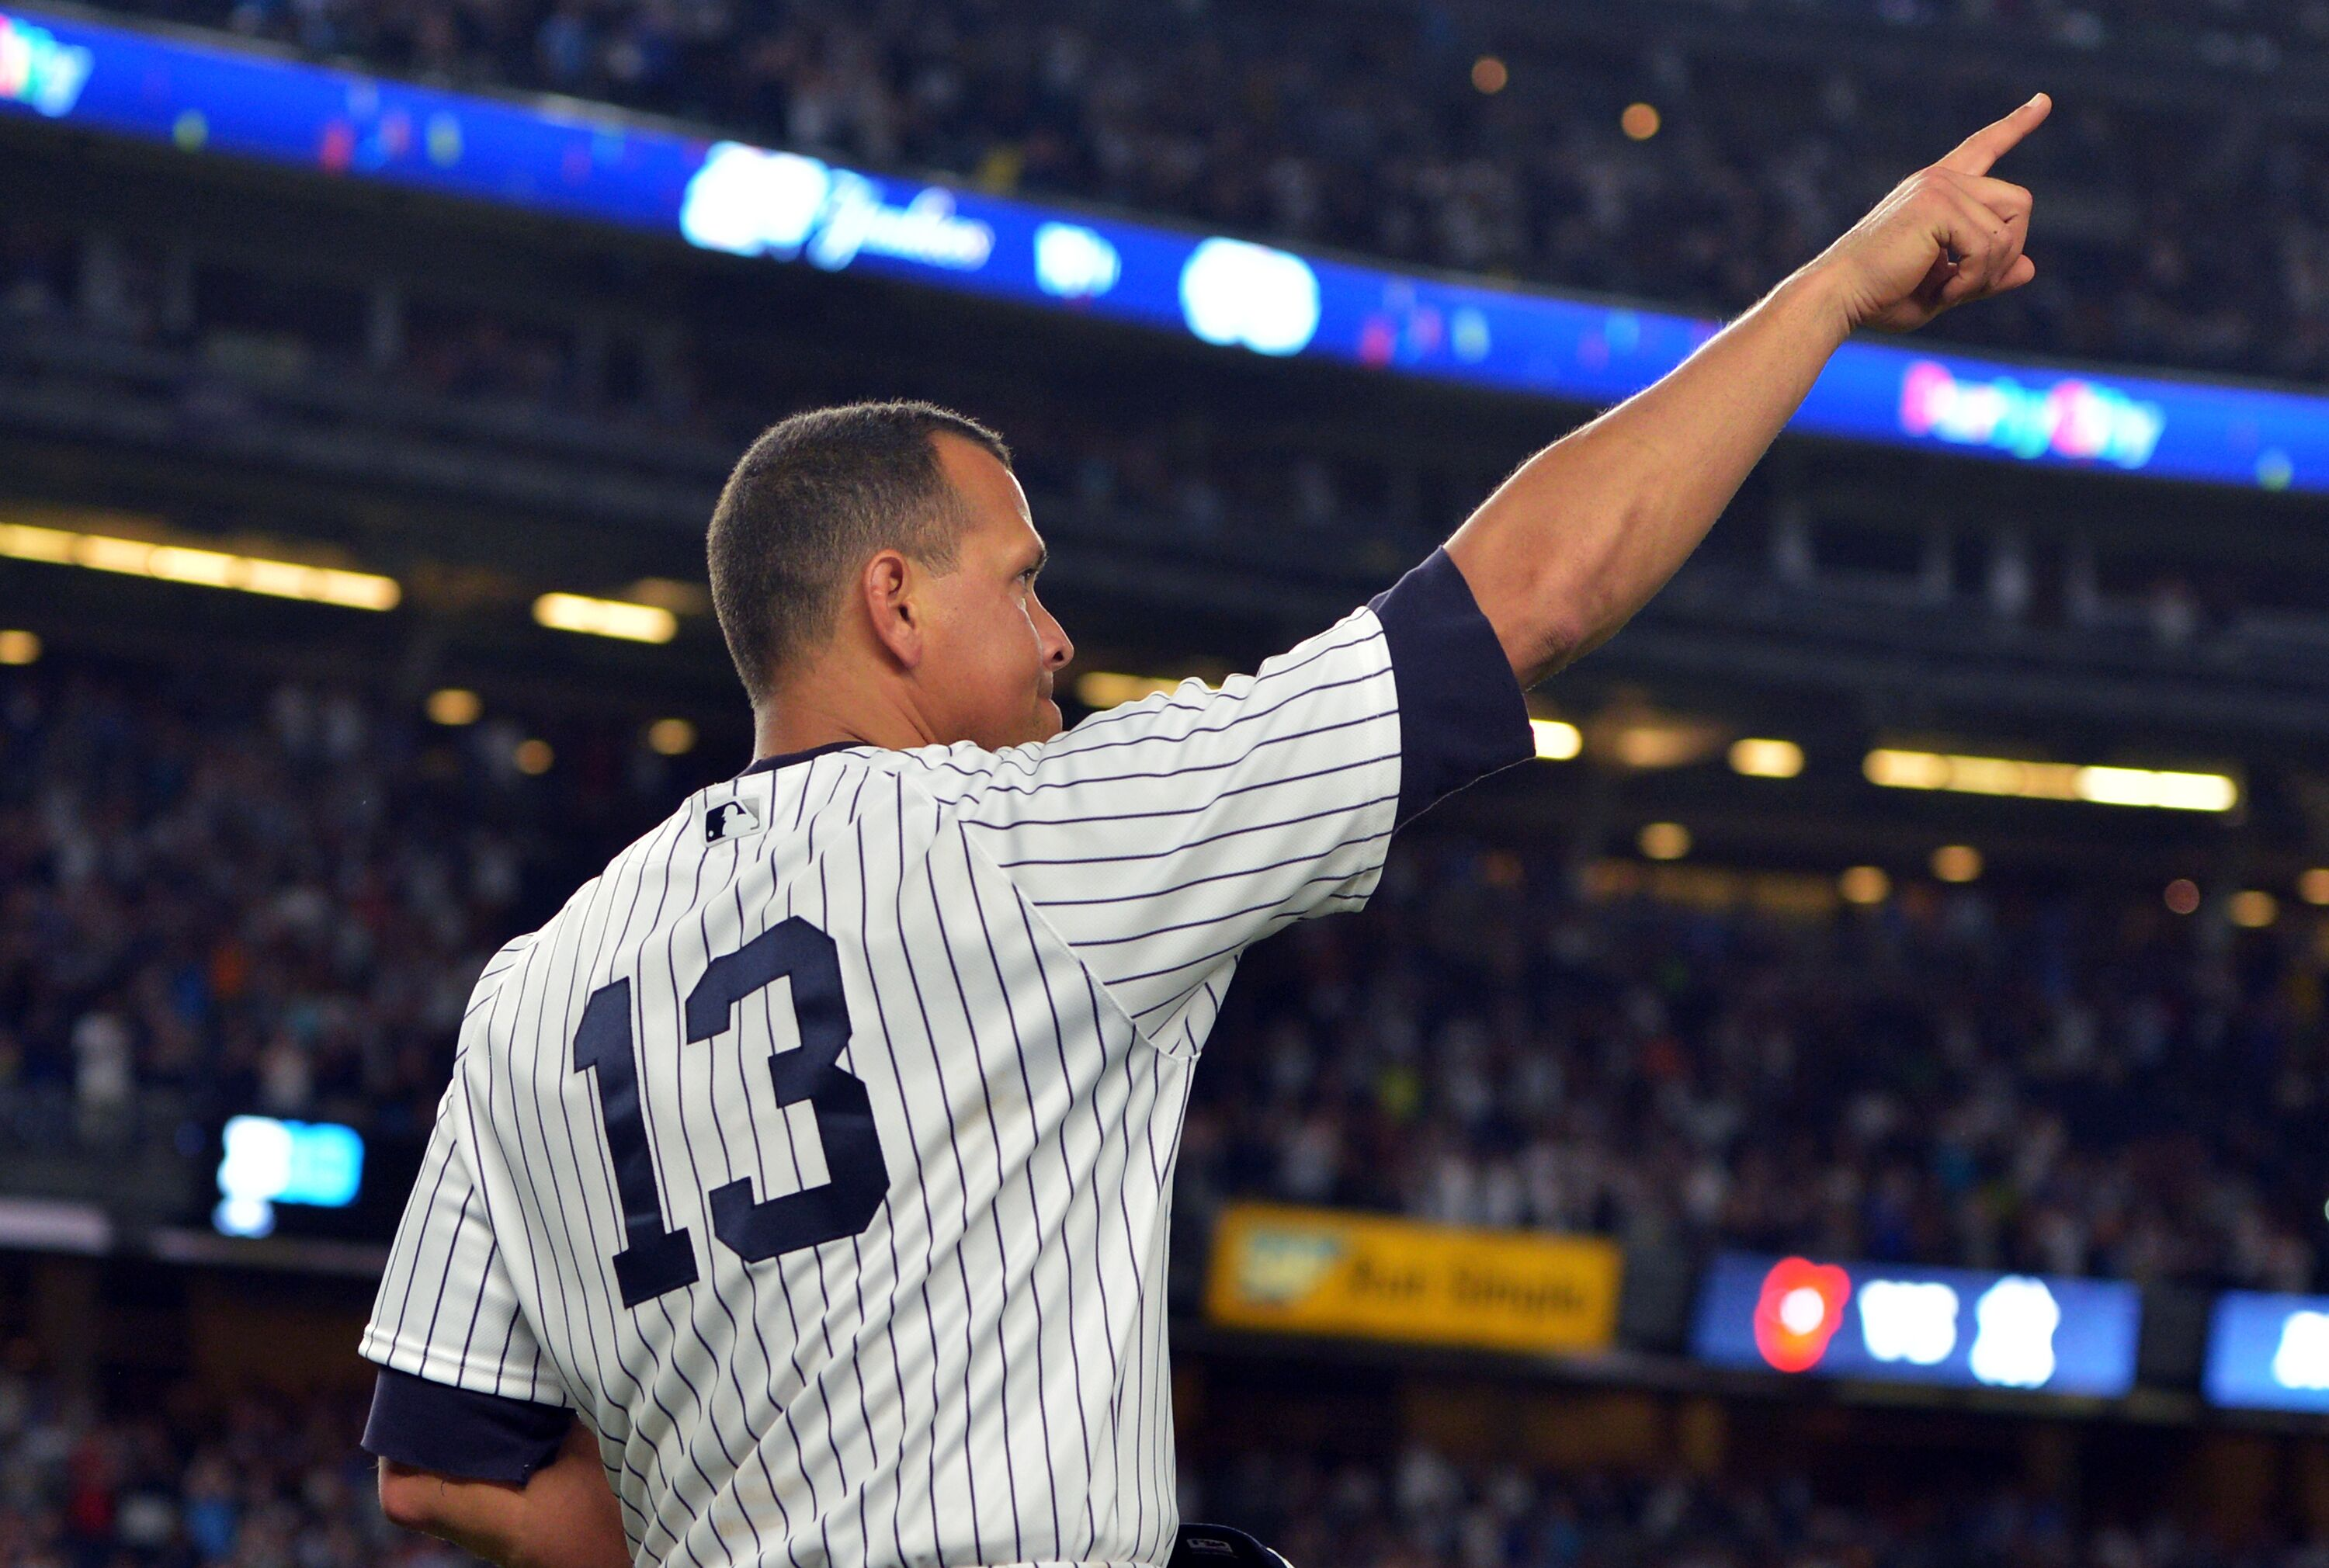 hot sale online 5ce6d 0a6e0 What are the Yankees going to do with A-Rod's No. 13?